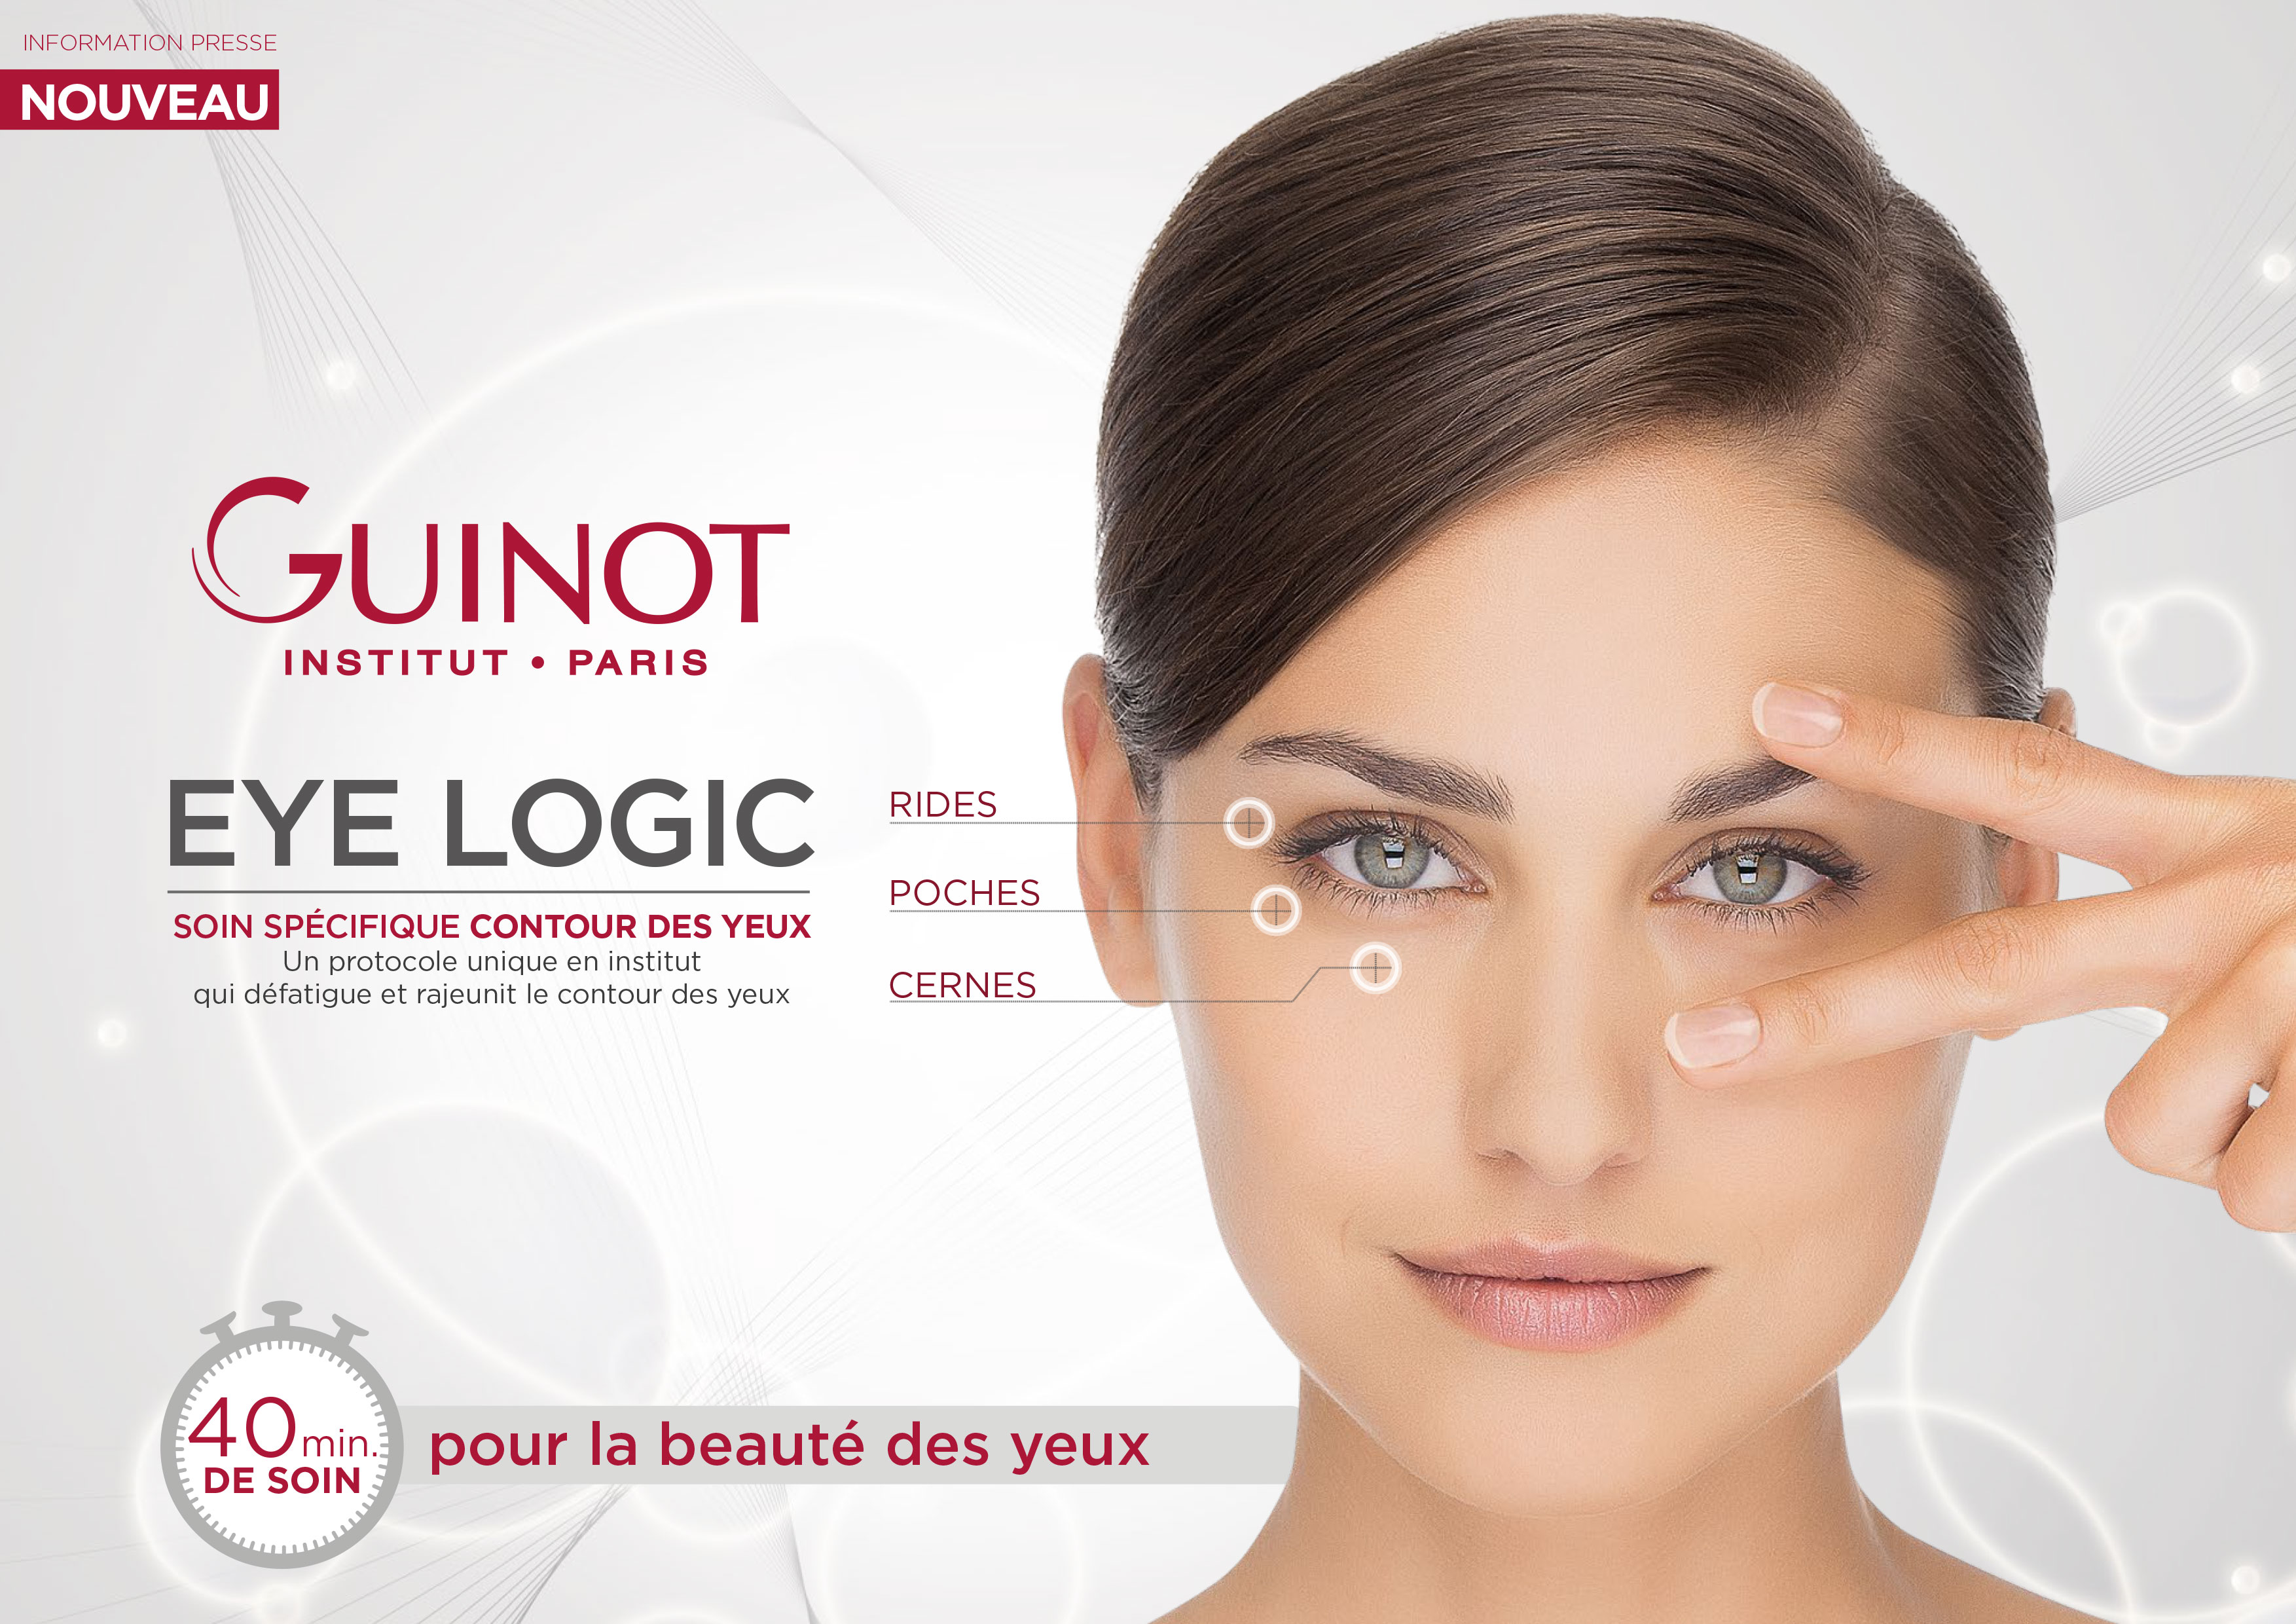 Tratament EYE LOGIC Guinot - Salon ELIA STUDIO